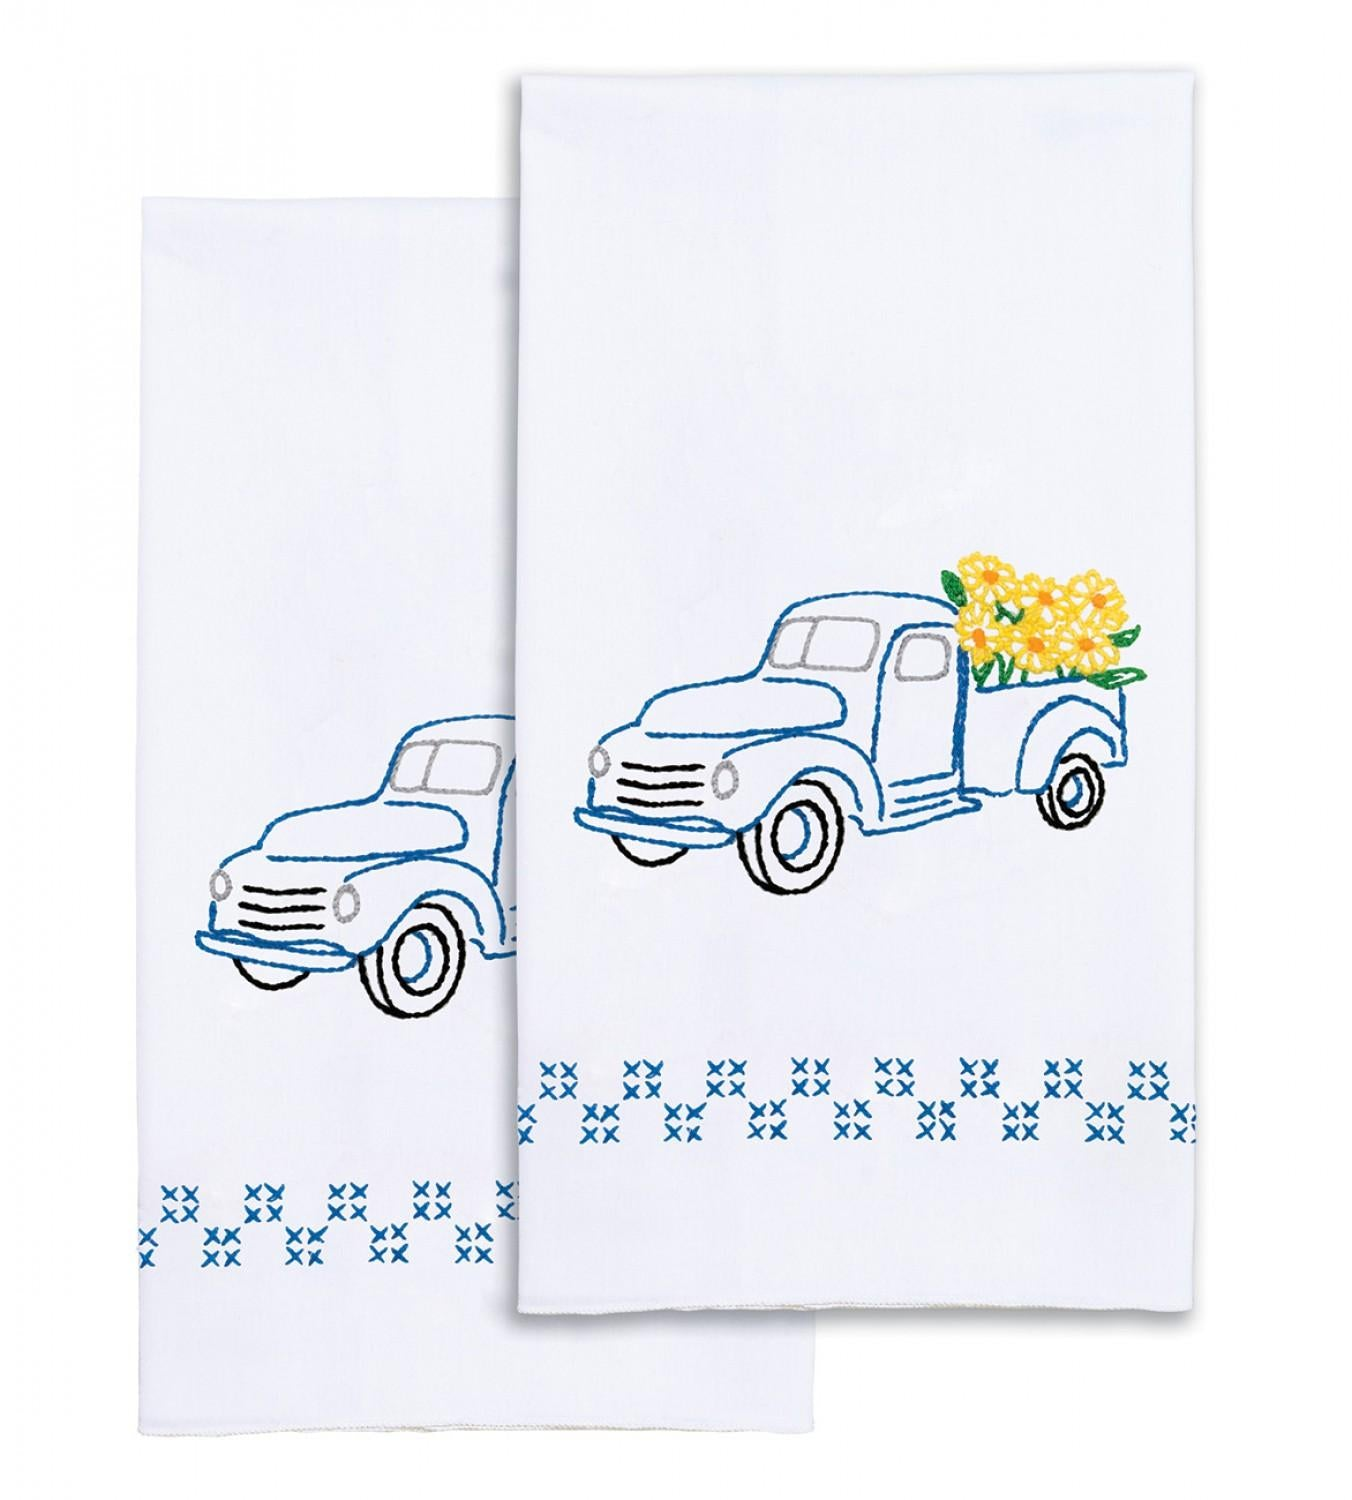 Flower Delivery Hand Towels Hand Emboridery